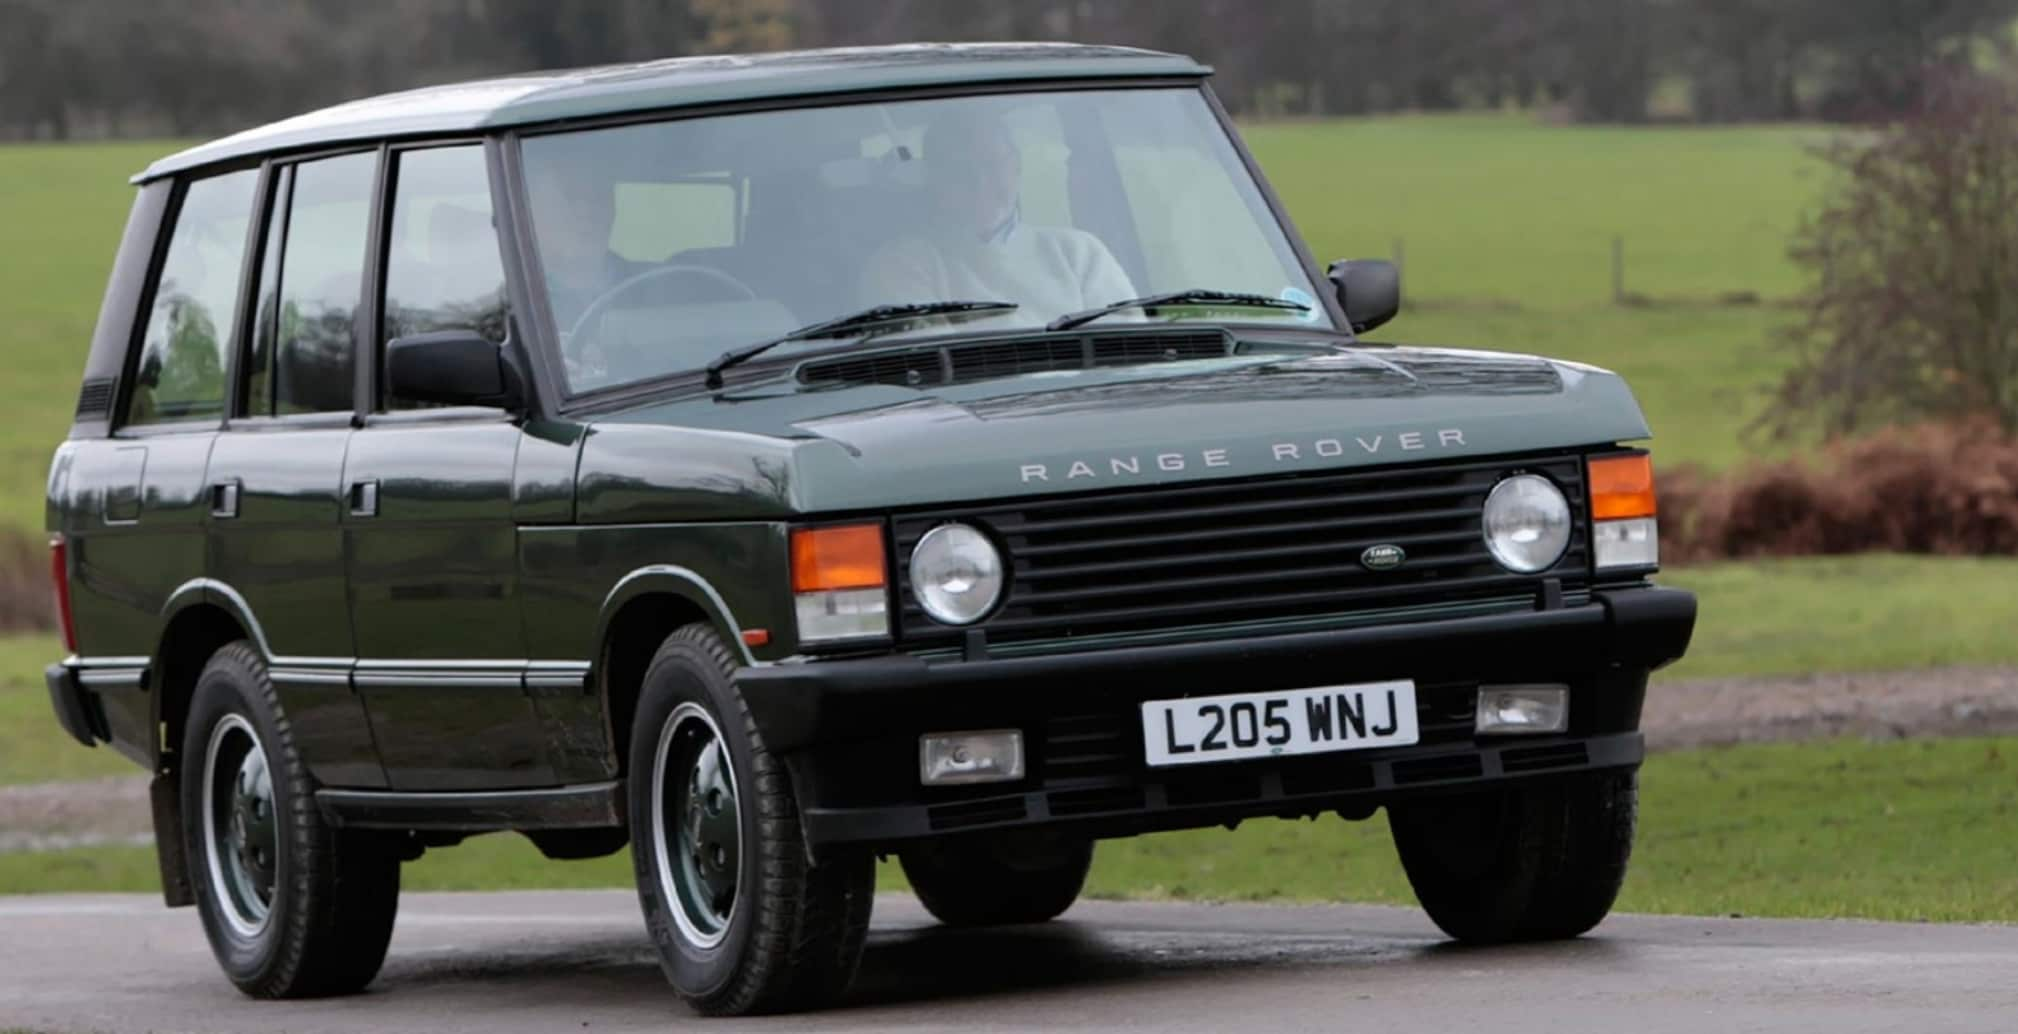 Buy a Vintage Range Rover Through the Land Rover Reborn Program